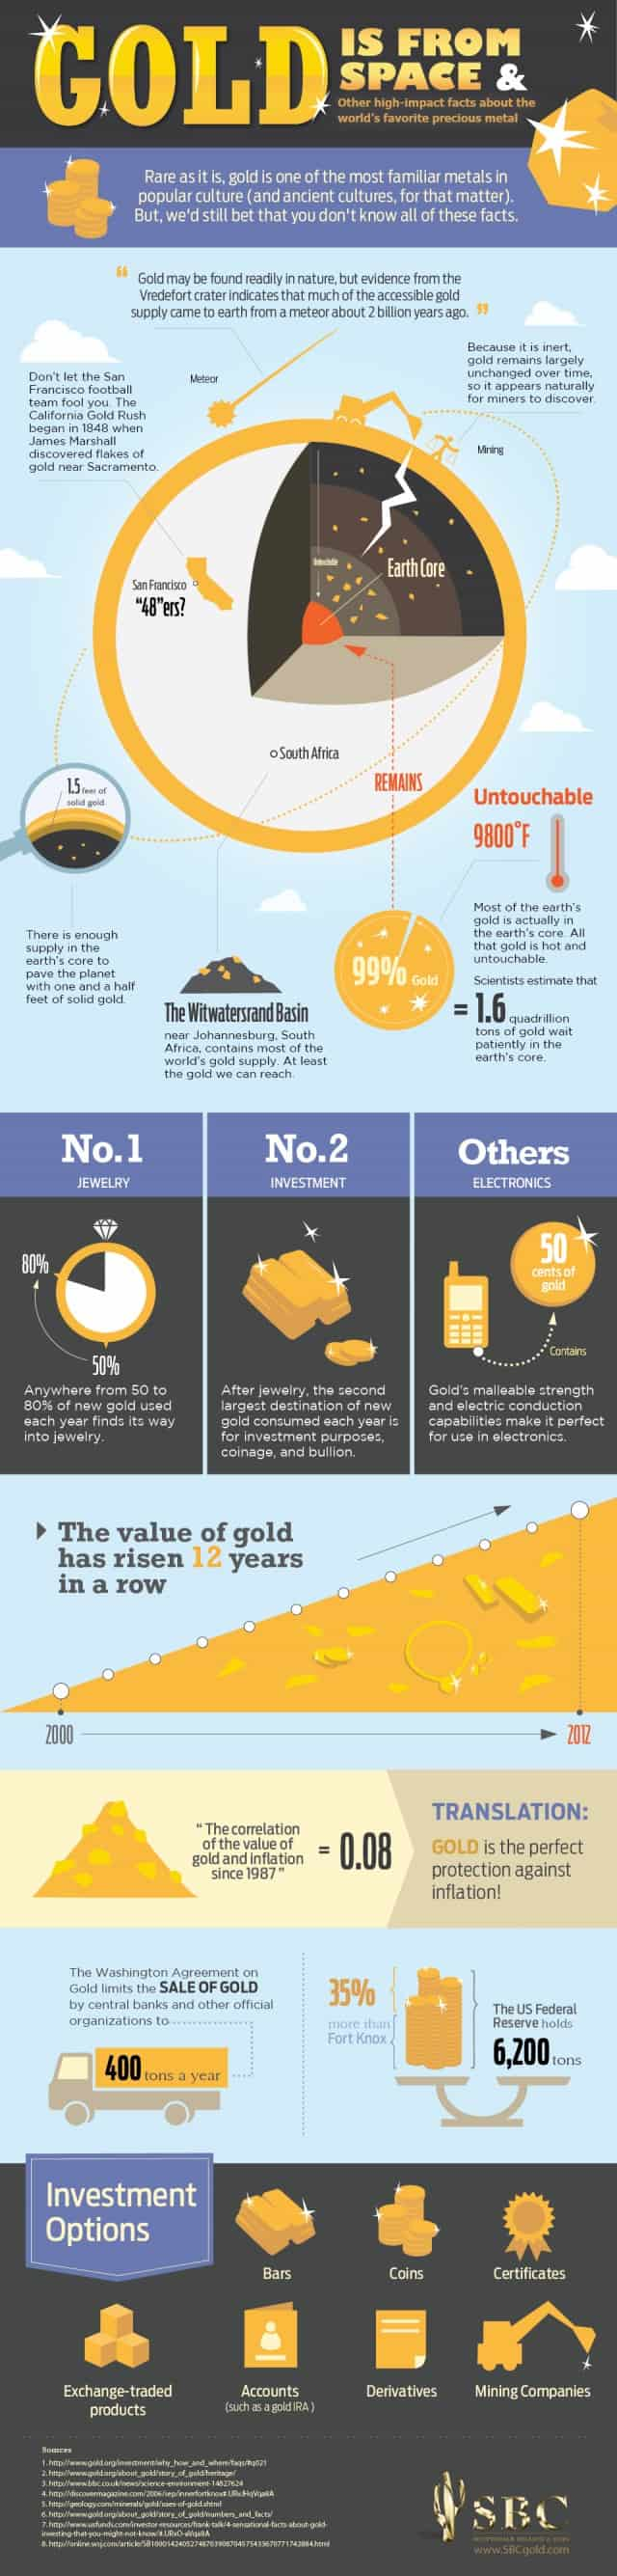 Gold is From Space & Other Facts